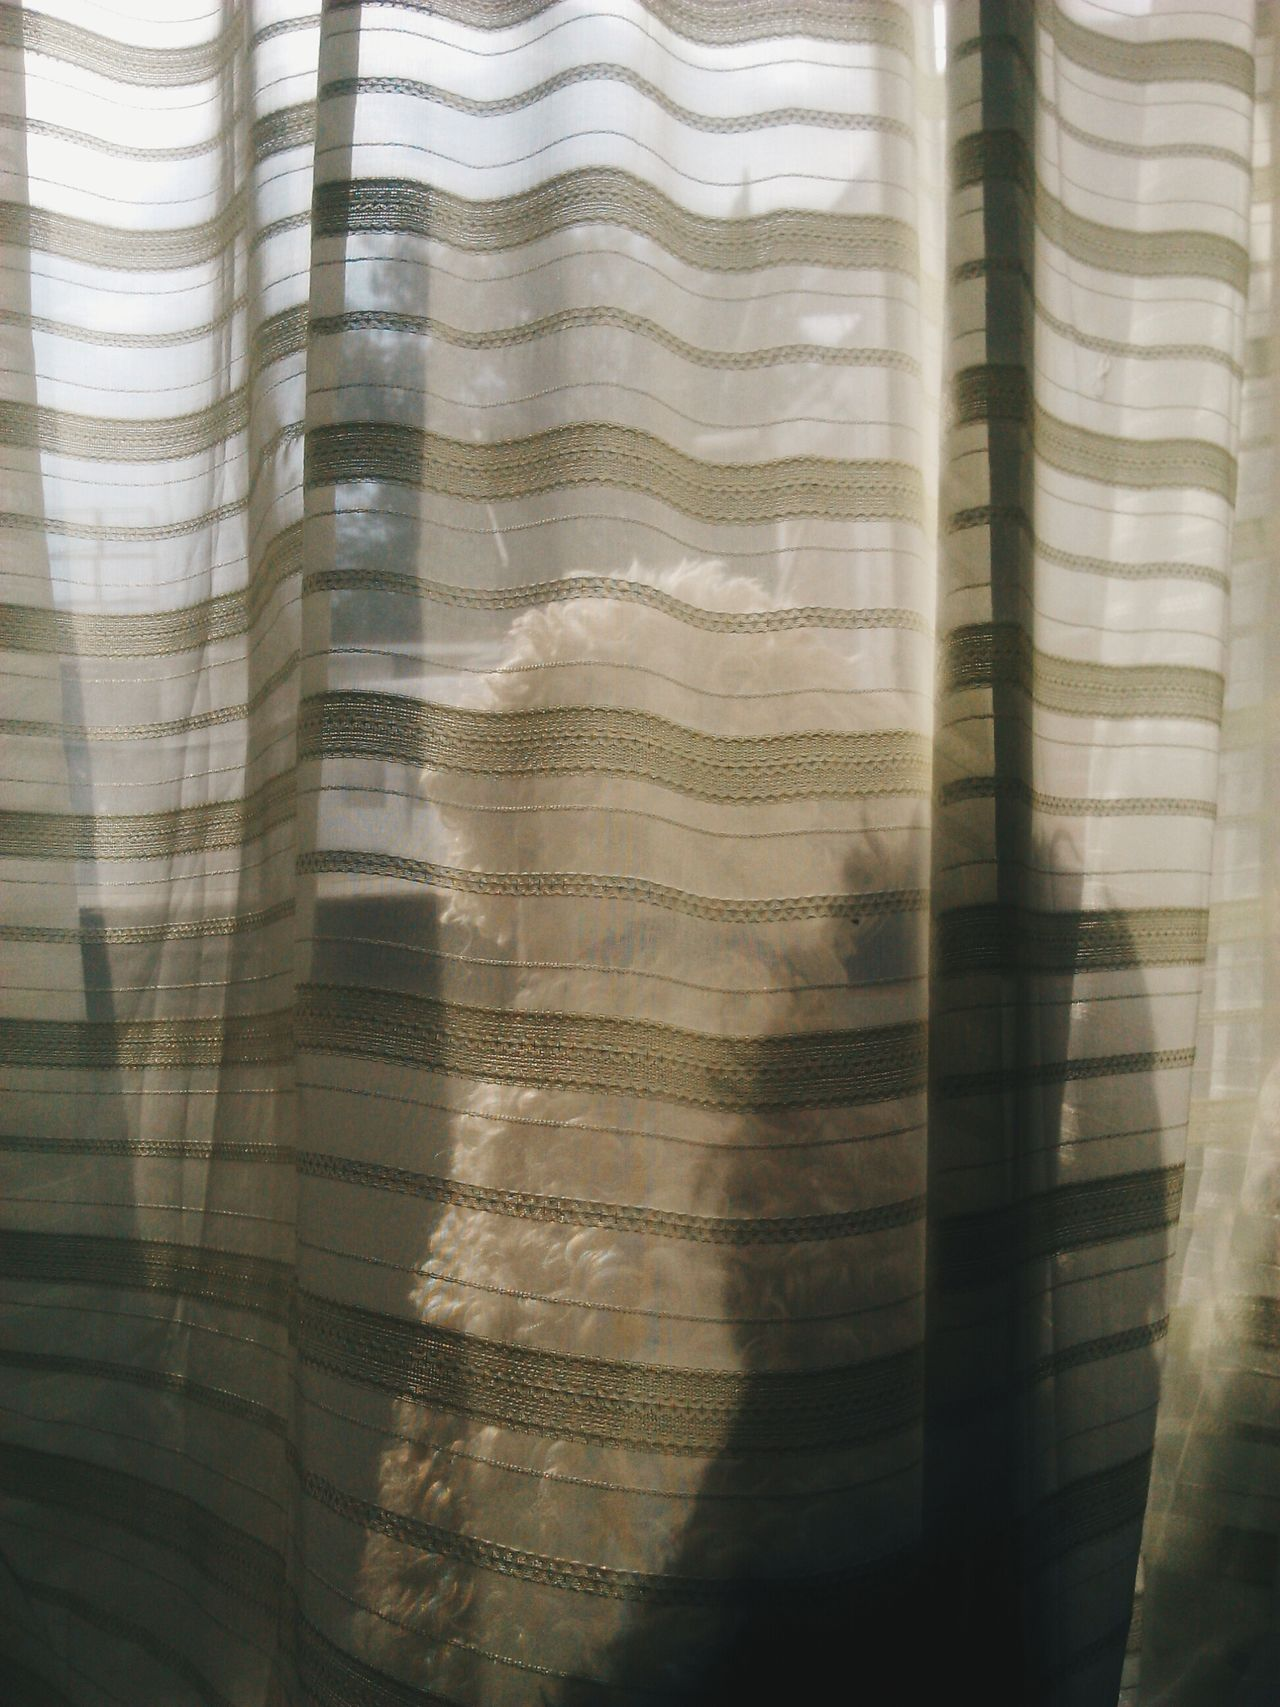 VIEW OF CURTAINS ON WINDOW